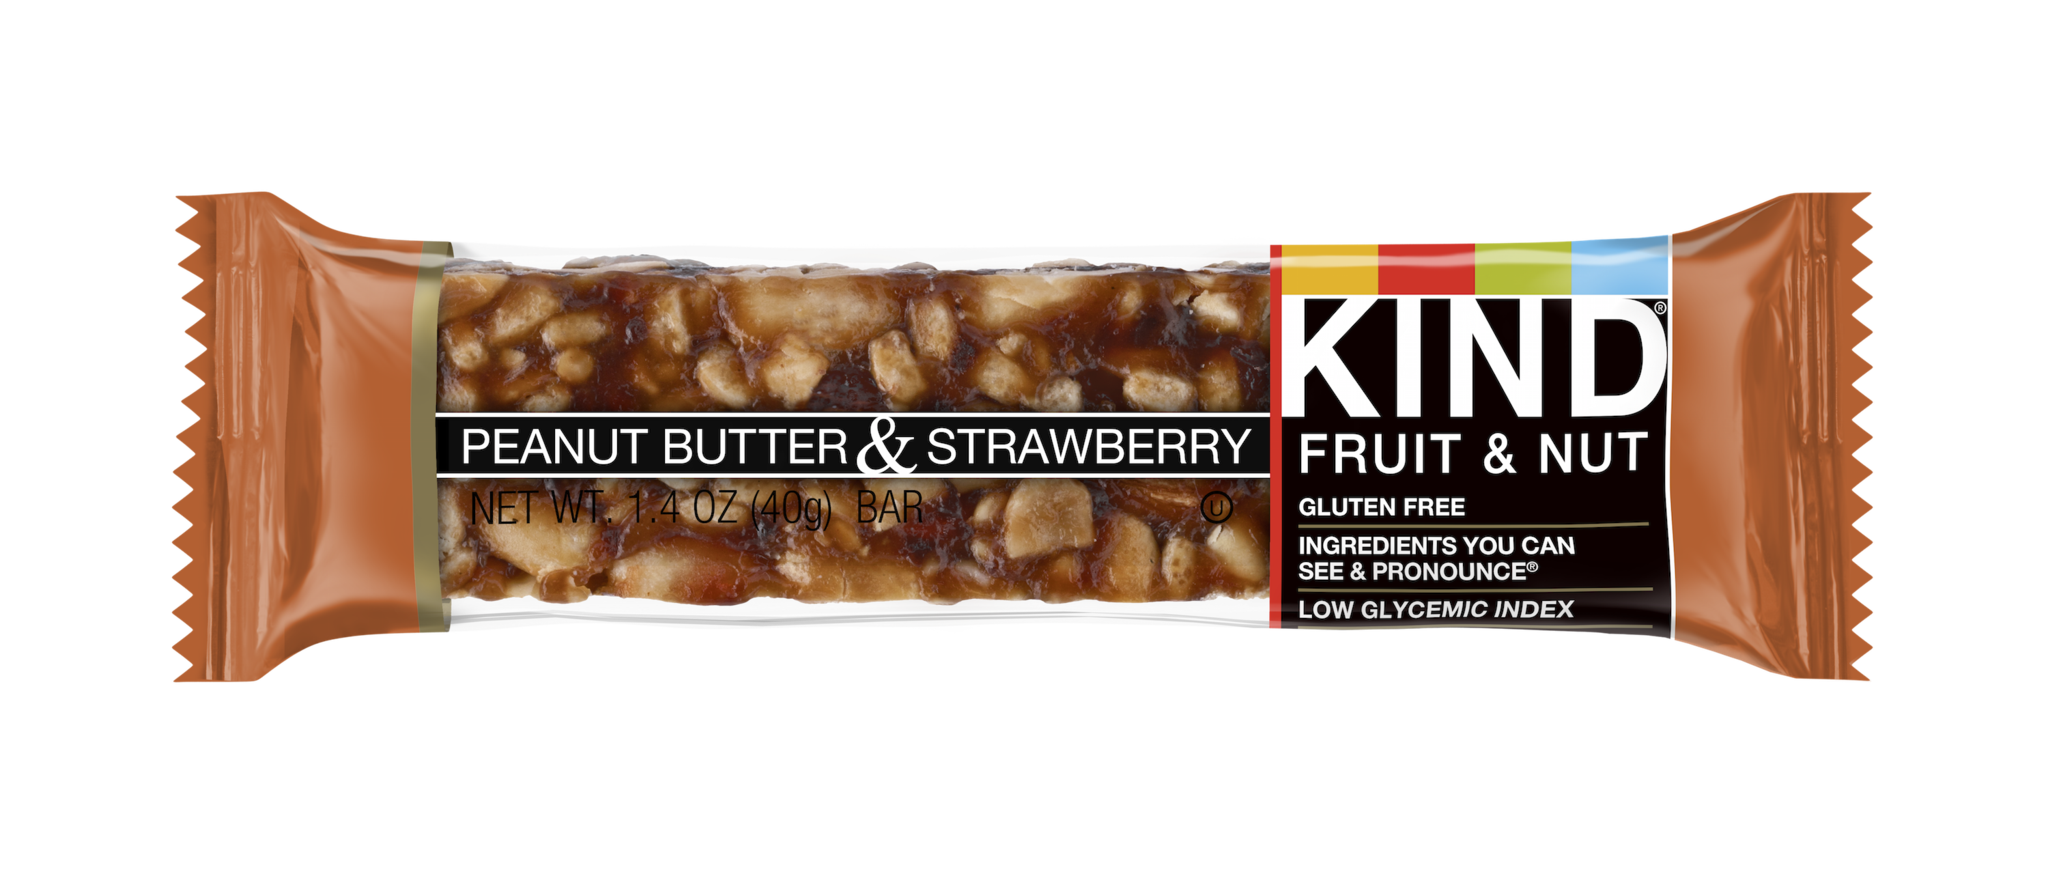 Kind Bar - Peanut Butter and Strawberry